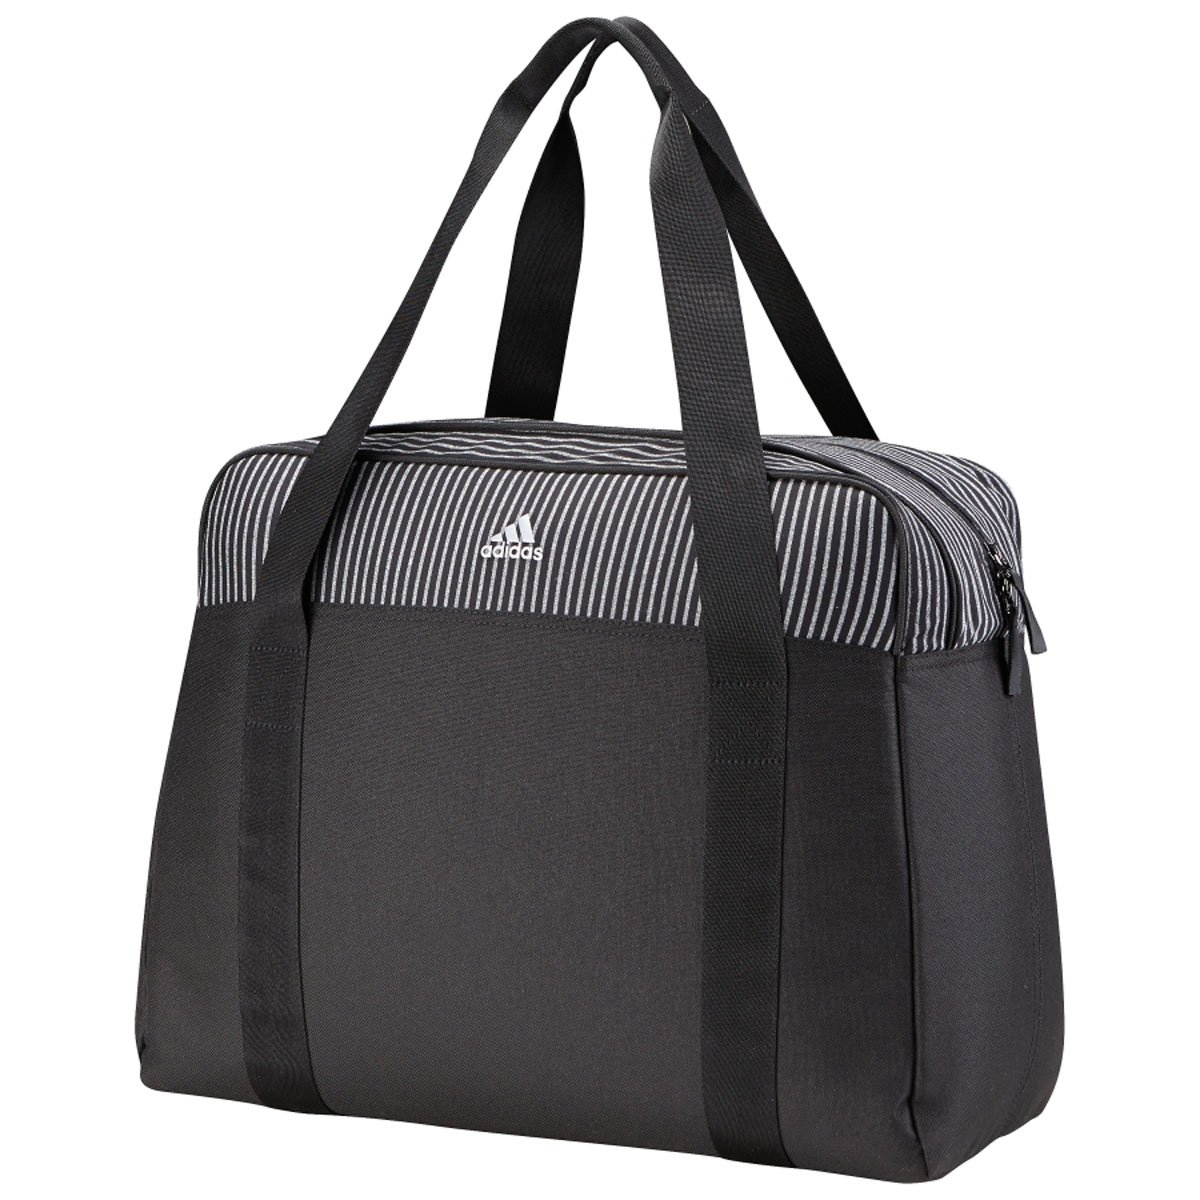 ebadbf67824e Amazon.com  adidas New Women Tote Bag ONE Size FITS All Black  Sports    Outdoors